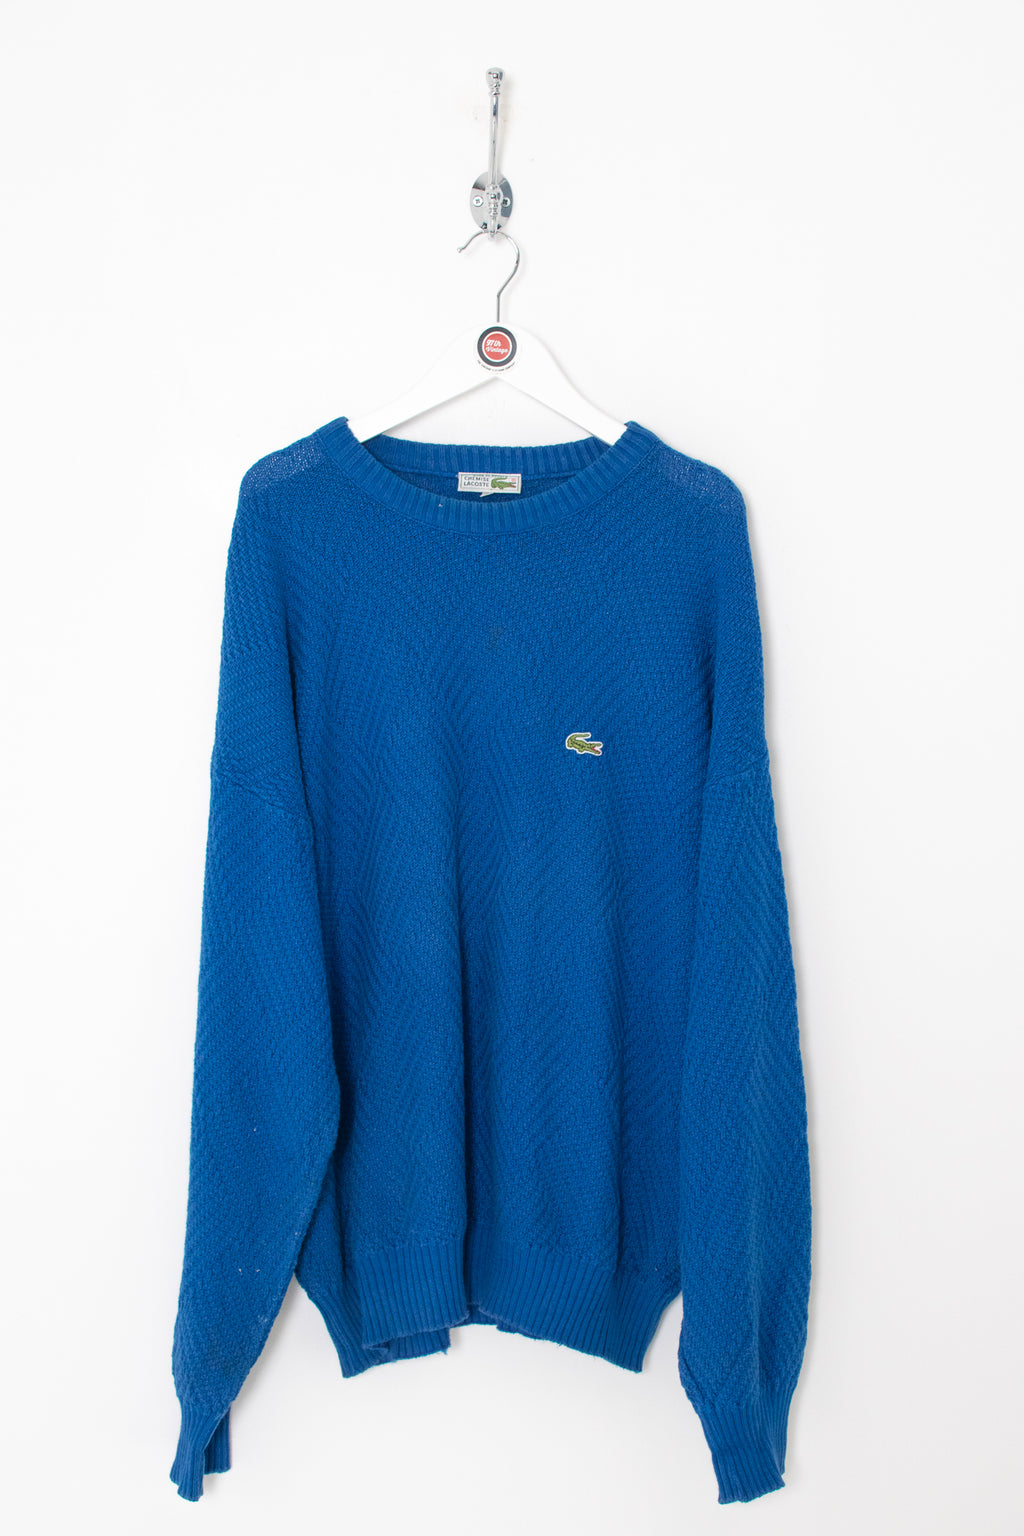 Lacoste Jumper (M)